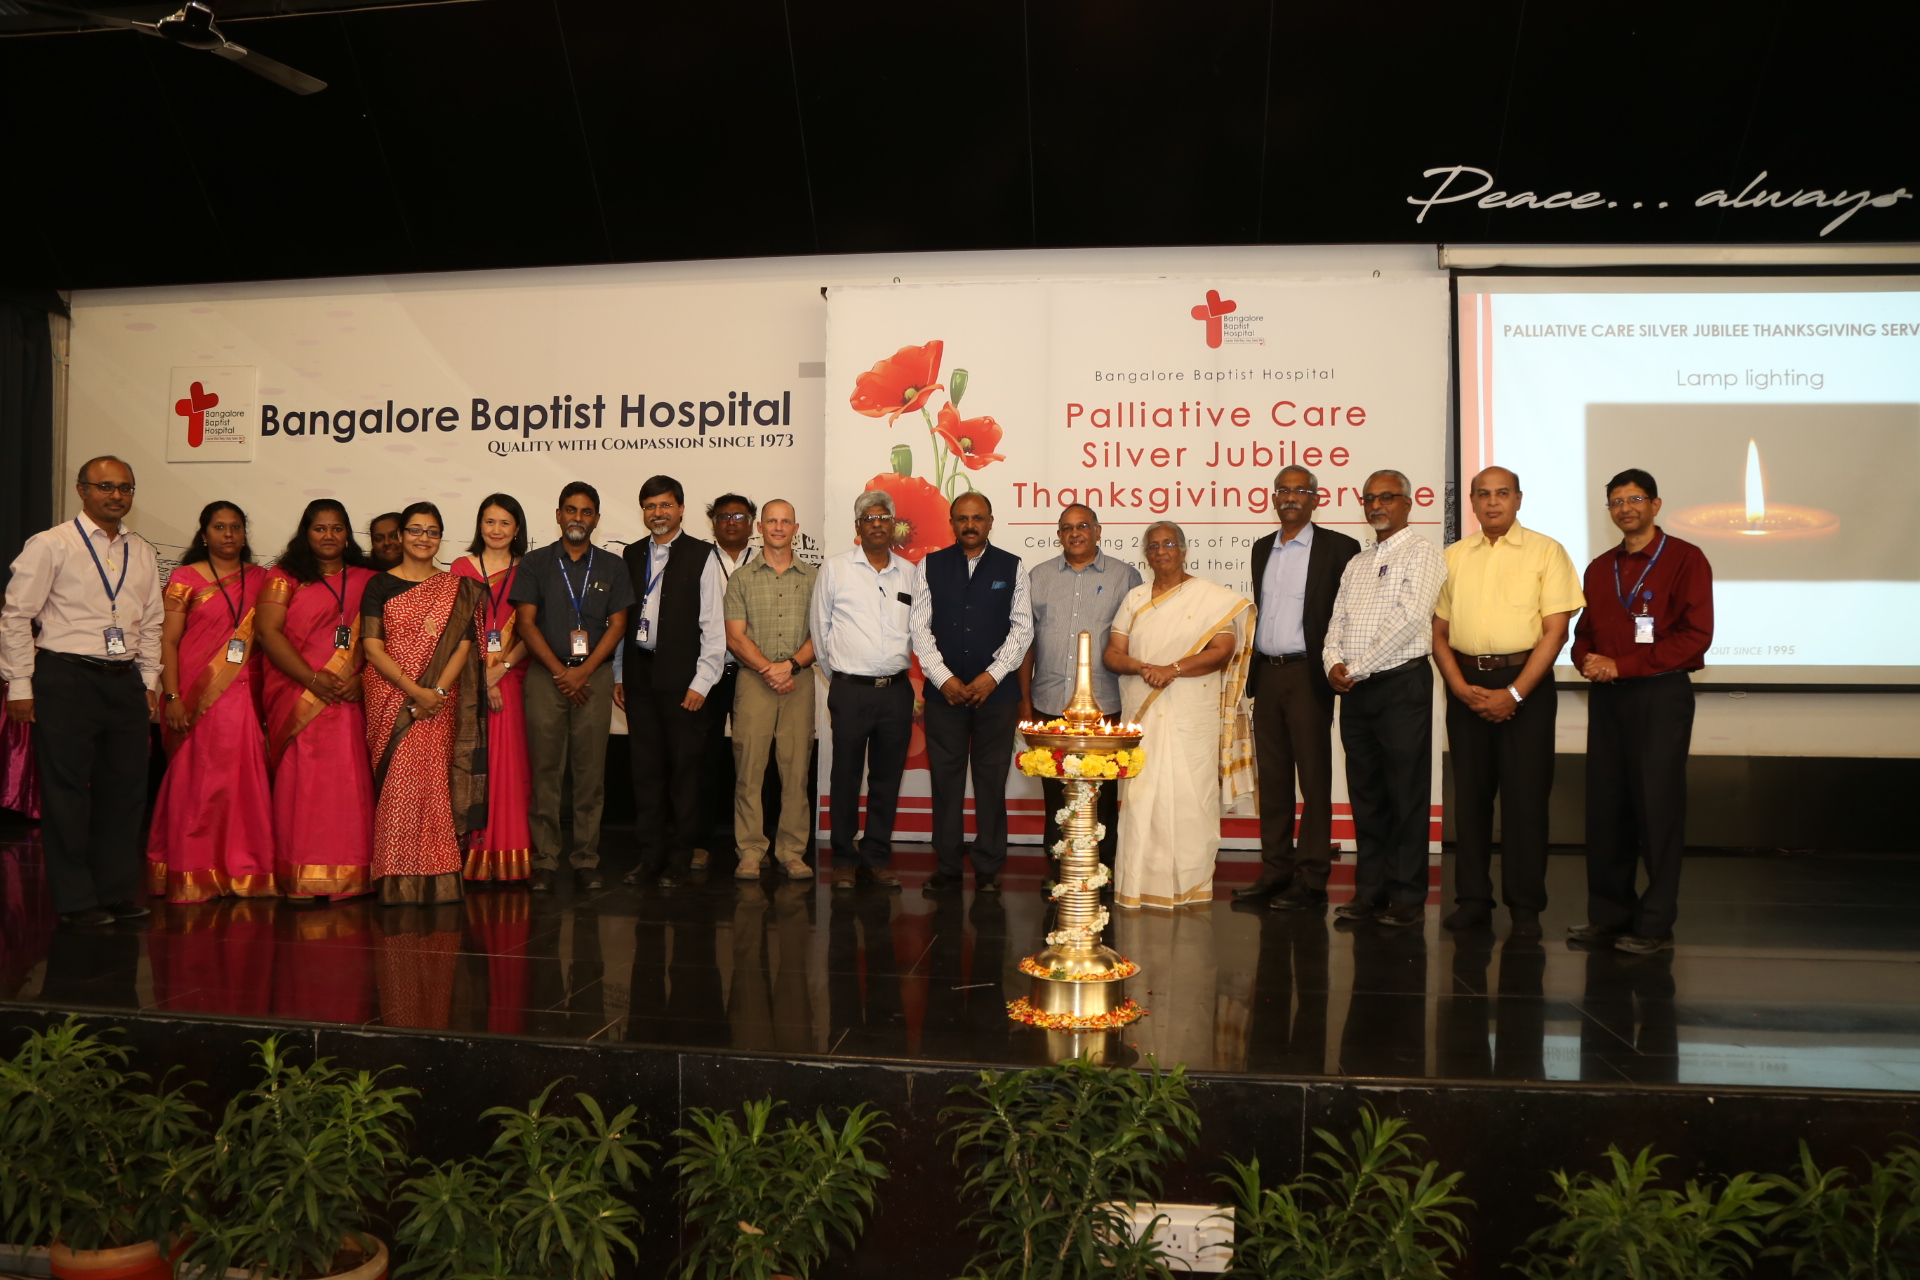 Restoring wholeness: Celebrating 25 years of Integrated Palliative Care Service in Bangalore